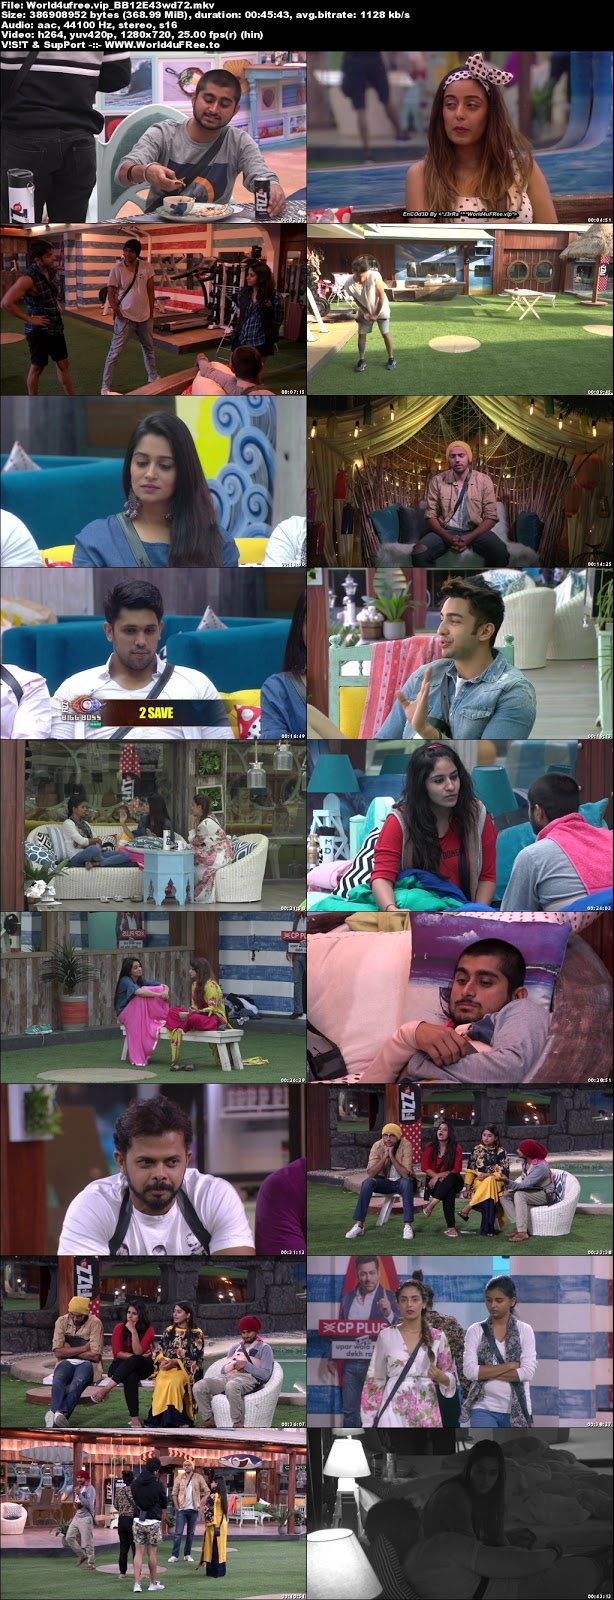 Bigg Boss 12 Episode 43 29 October 2018 720p WEBRip 350Mb x264 world4ufree.vip tv show Episode 40 26 October 2018 world4ufree.vip 300mb 250mb 300mb compressed small size free download or watch online at world4ufree.vip